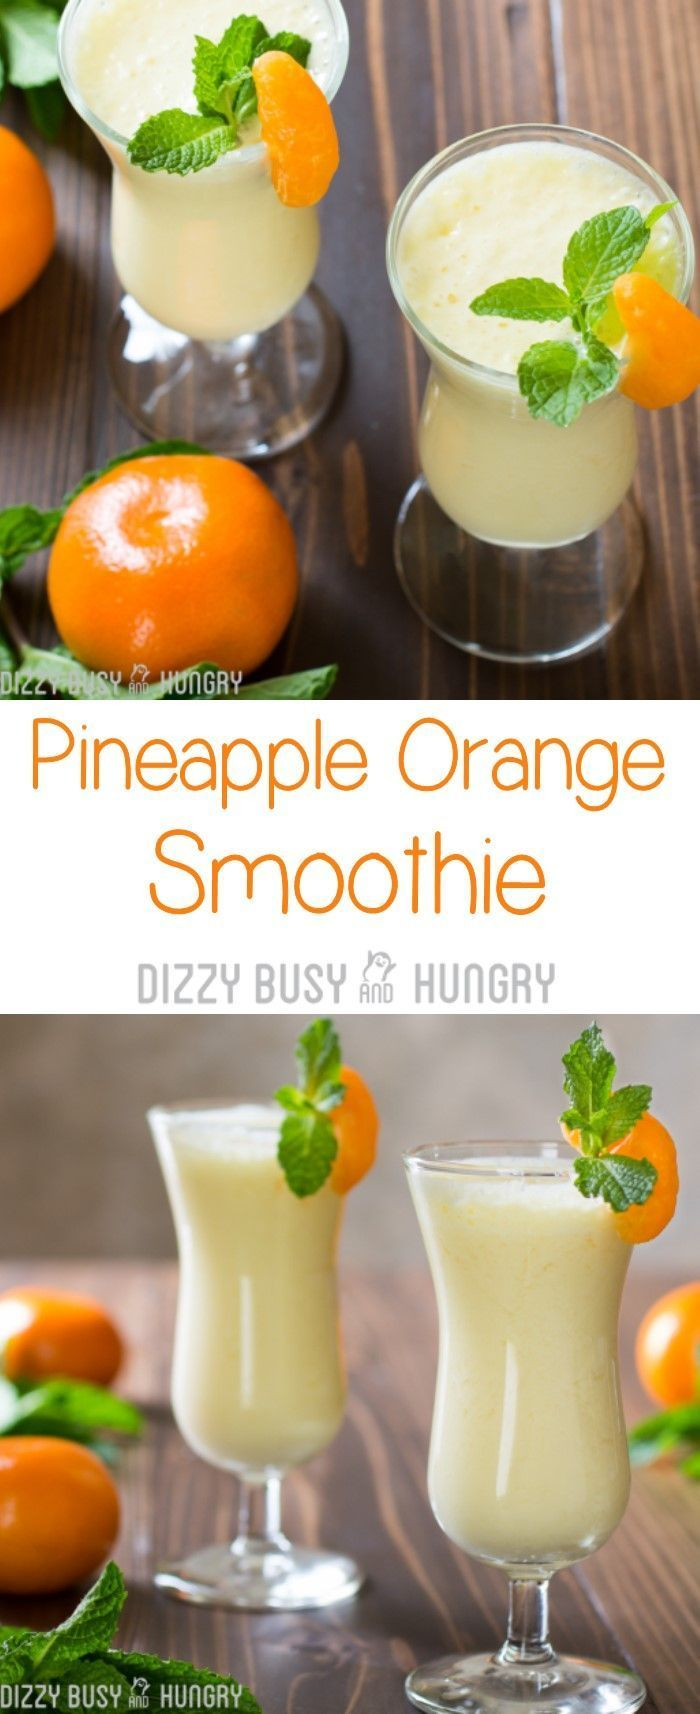 Pineapple Orange Smoothie #SundaySupper http://www.dizzybusyandhungry.com/pineapple-orange-smoothie/